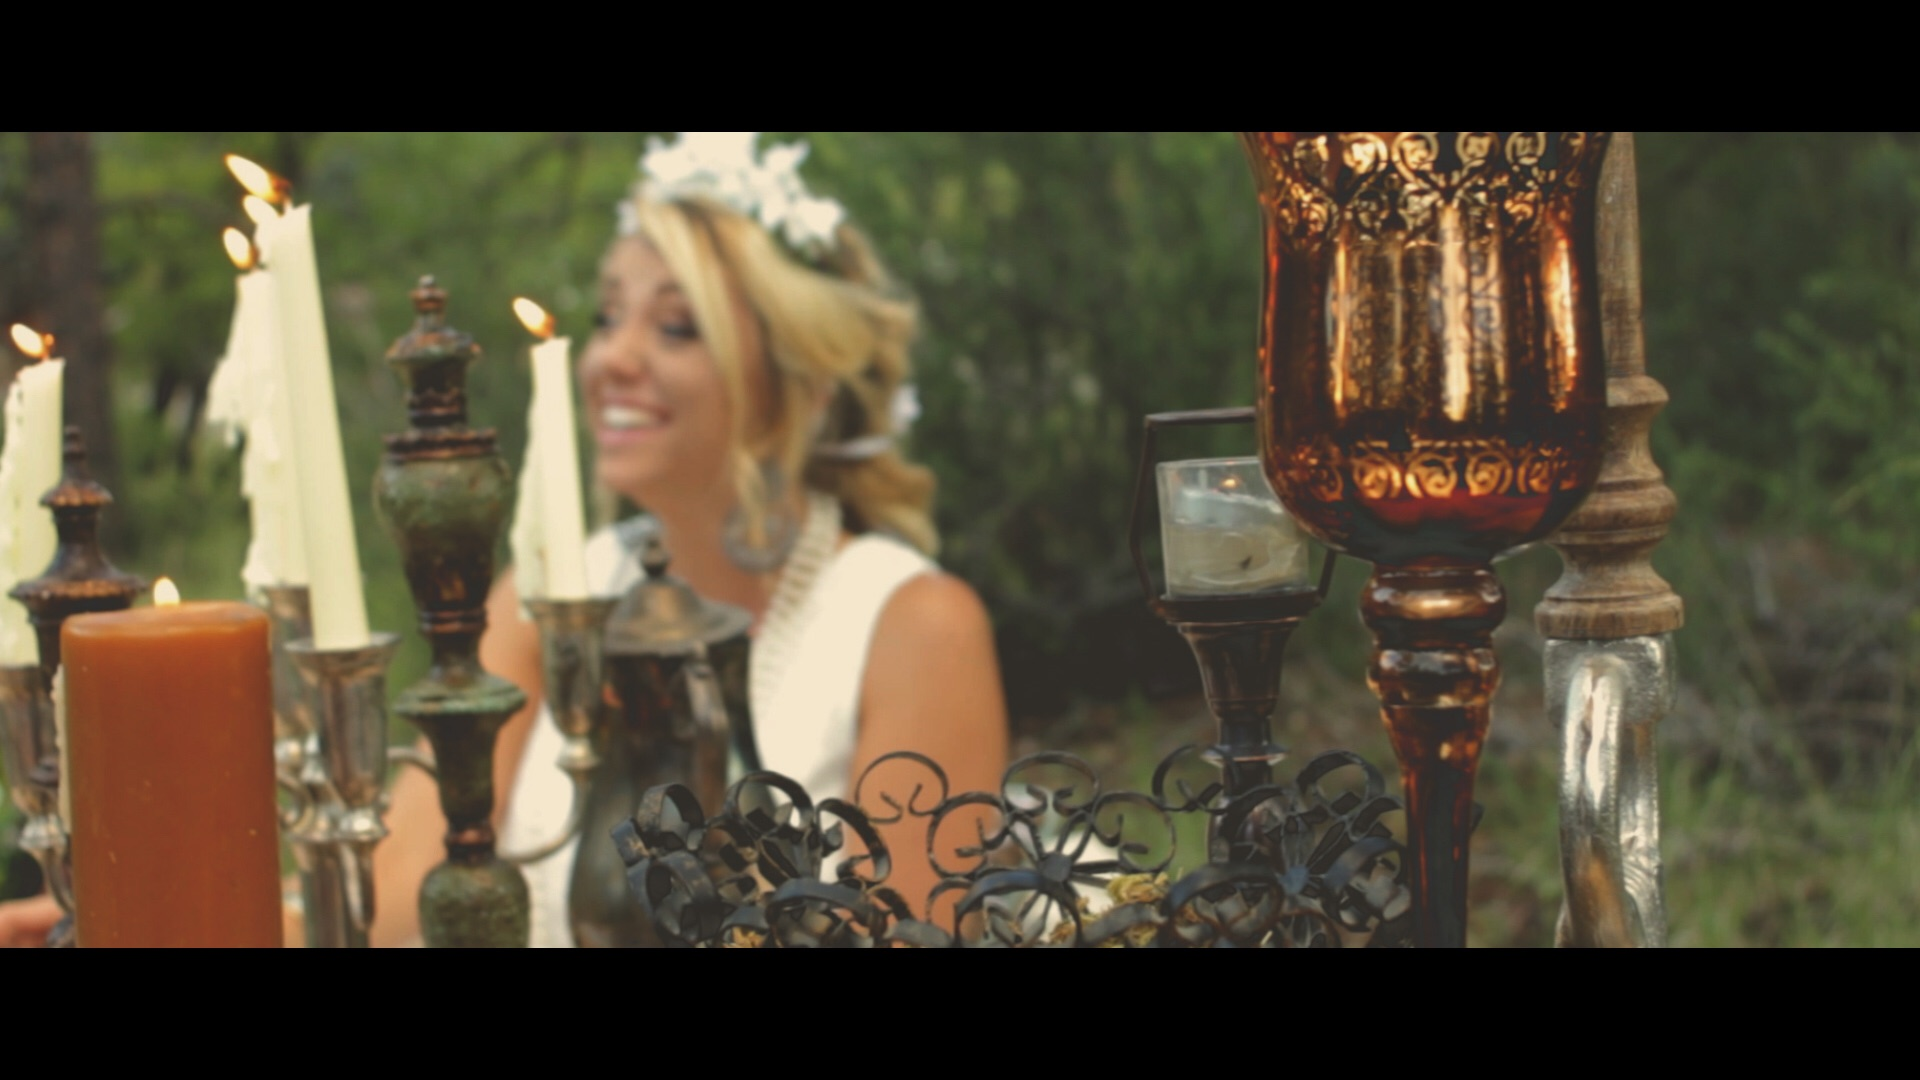 The details are the emphasis of this shot. The bride on the background keeps the image interesting.